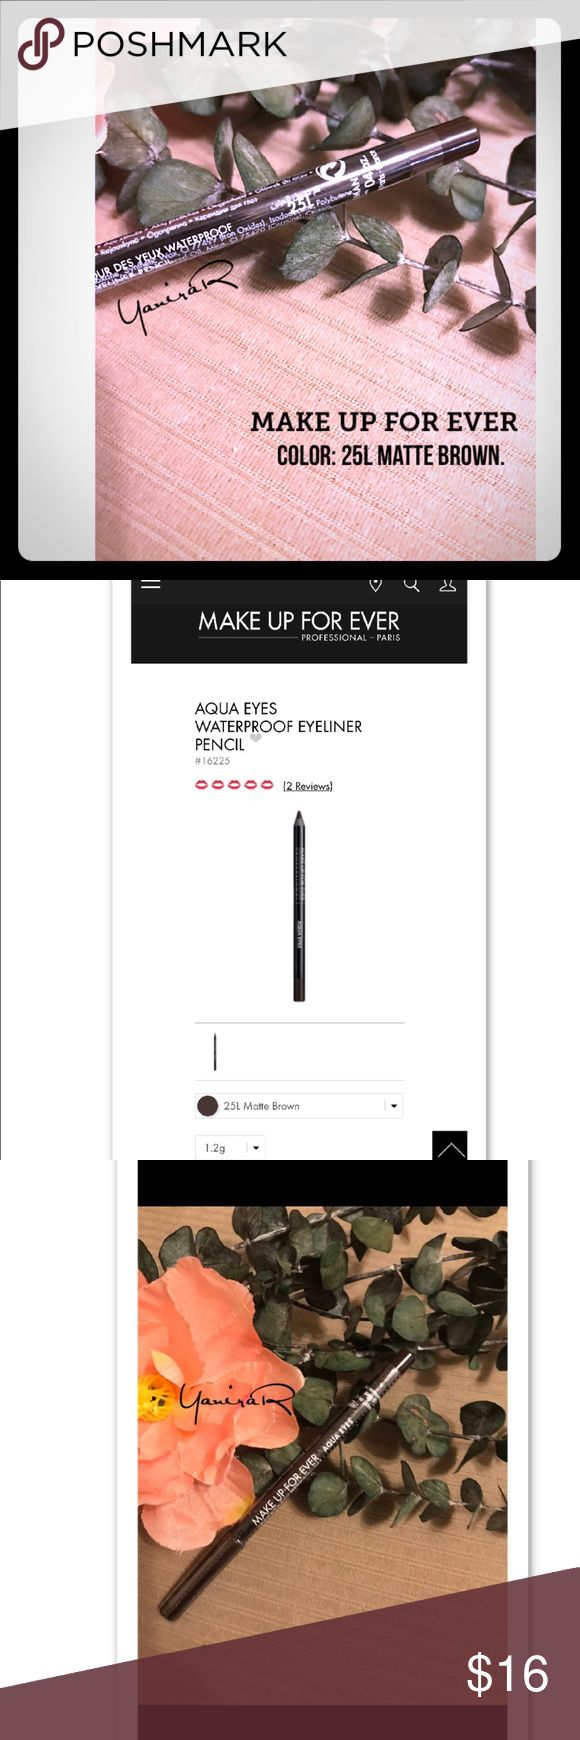 NWT (sealed) MAKE UP FOR EVER Eyeliner Waterproof !!NEW WITH TAG AND COMPLET SEALED ¡¡.                                     EYELINER by @MAKE UP FOR EVER ✅COLOR L25 Matte Brown.   💯recommended.                                              ‼️A long-wearing, waterproof eye pencil that pairs ultra-creamy glide with instant color intensity.                     ✅available in more colors!!!                                               ‼️MAKE A BUNDLE AND I WILL GIVE YOU A PRIVATE DISCOUNT‼️…